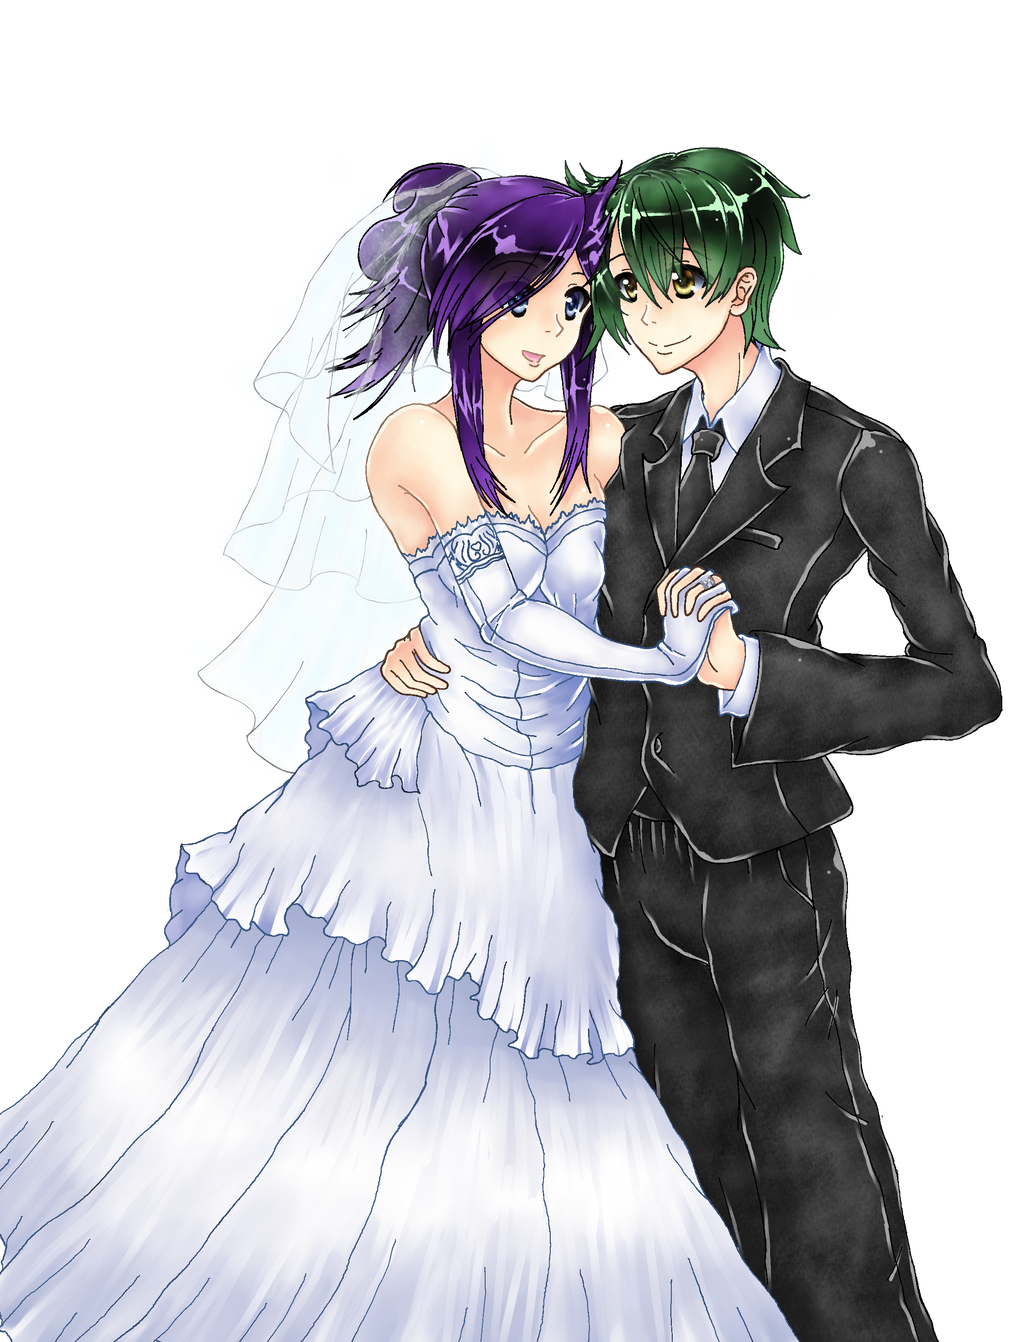 N and touko wedding - Anime Wedding Picture Commission Colored 388766166